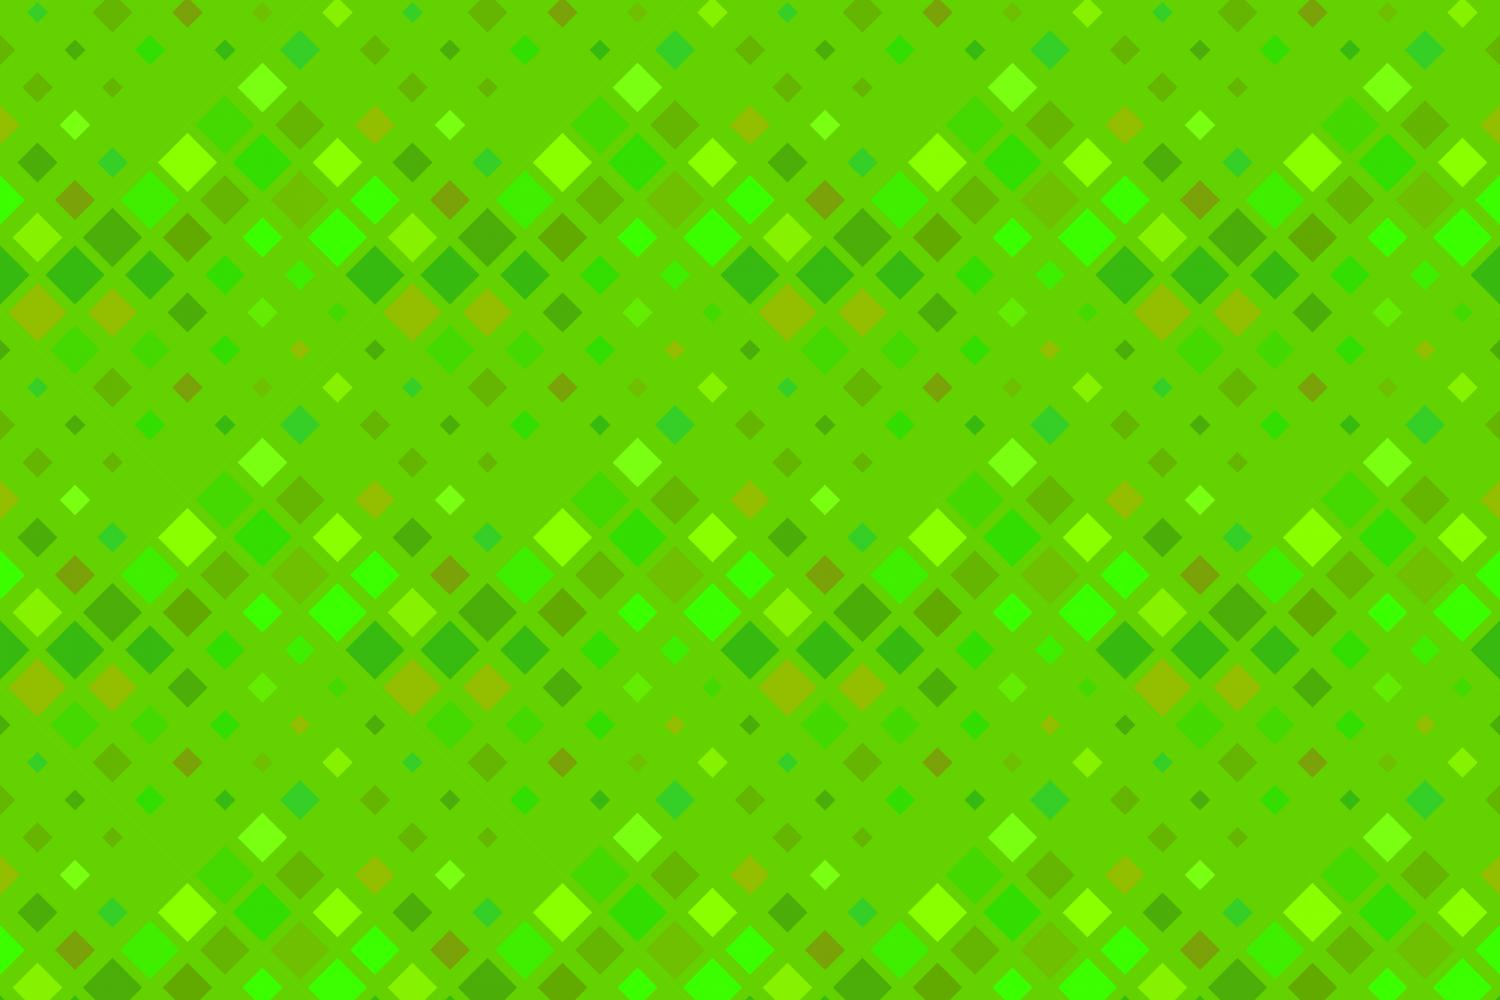 24 Seamless Green Square Patterns example image 22